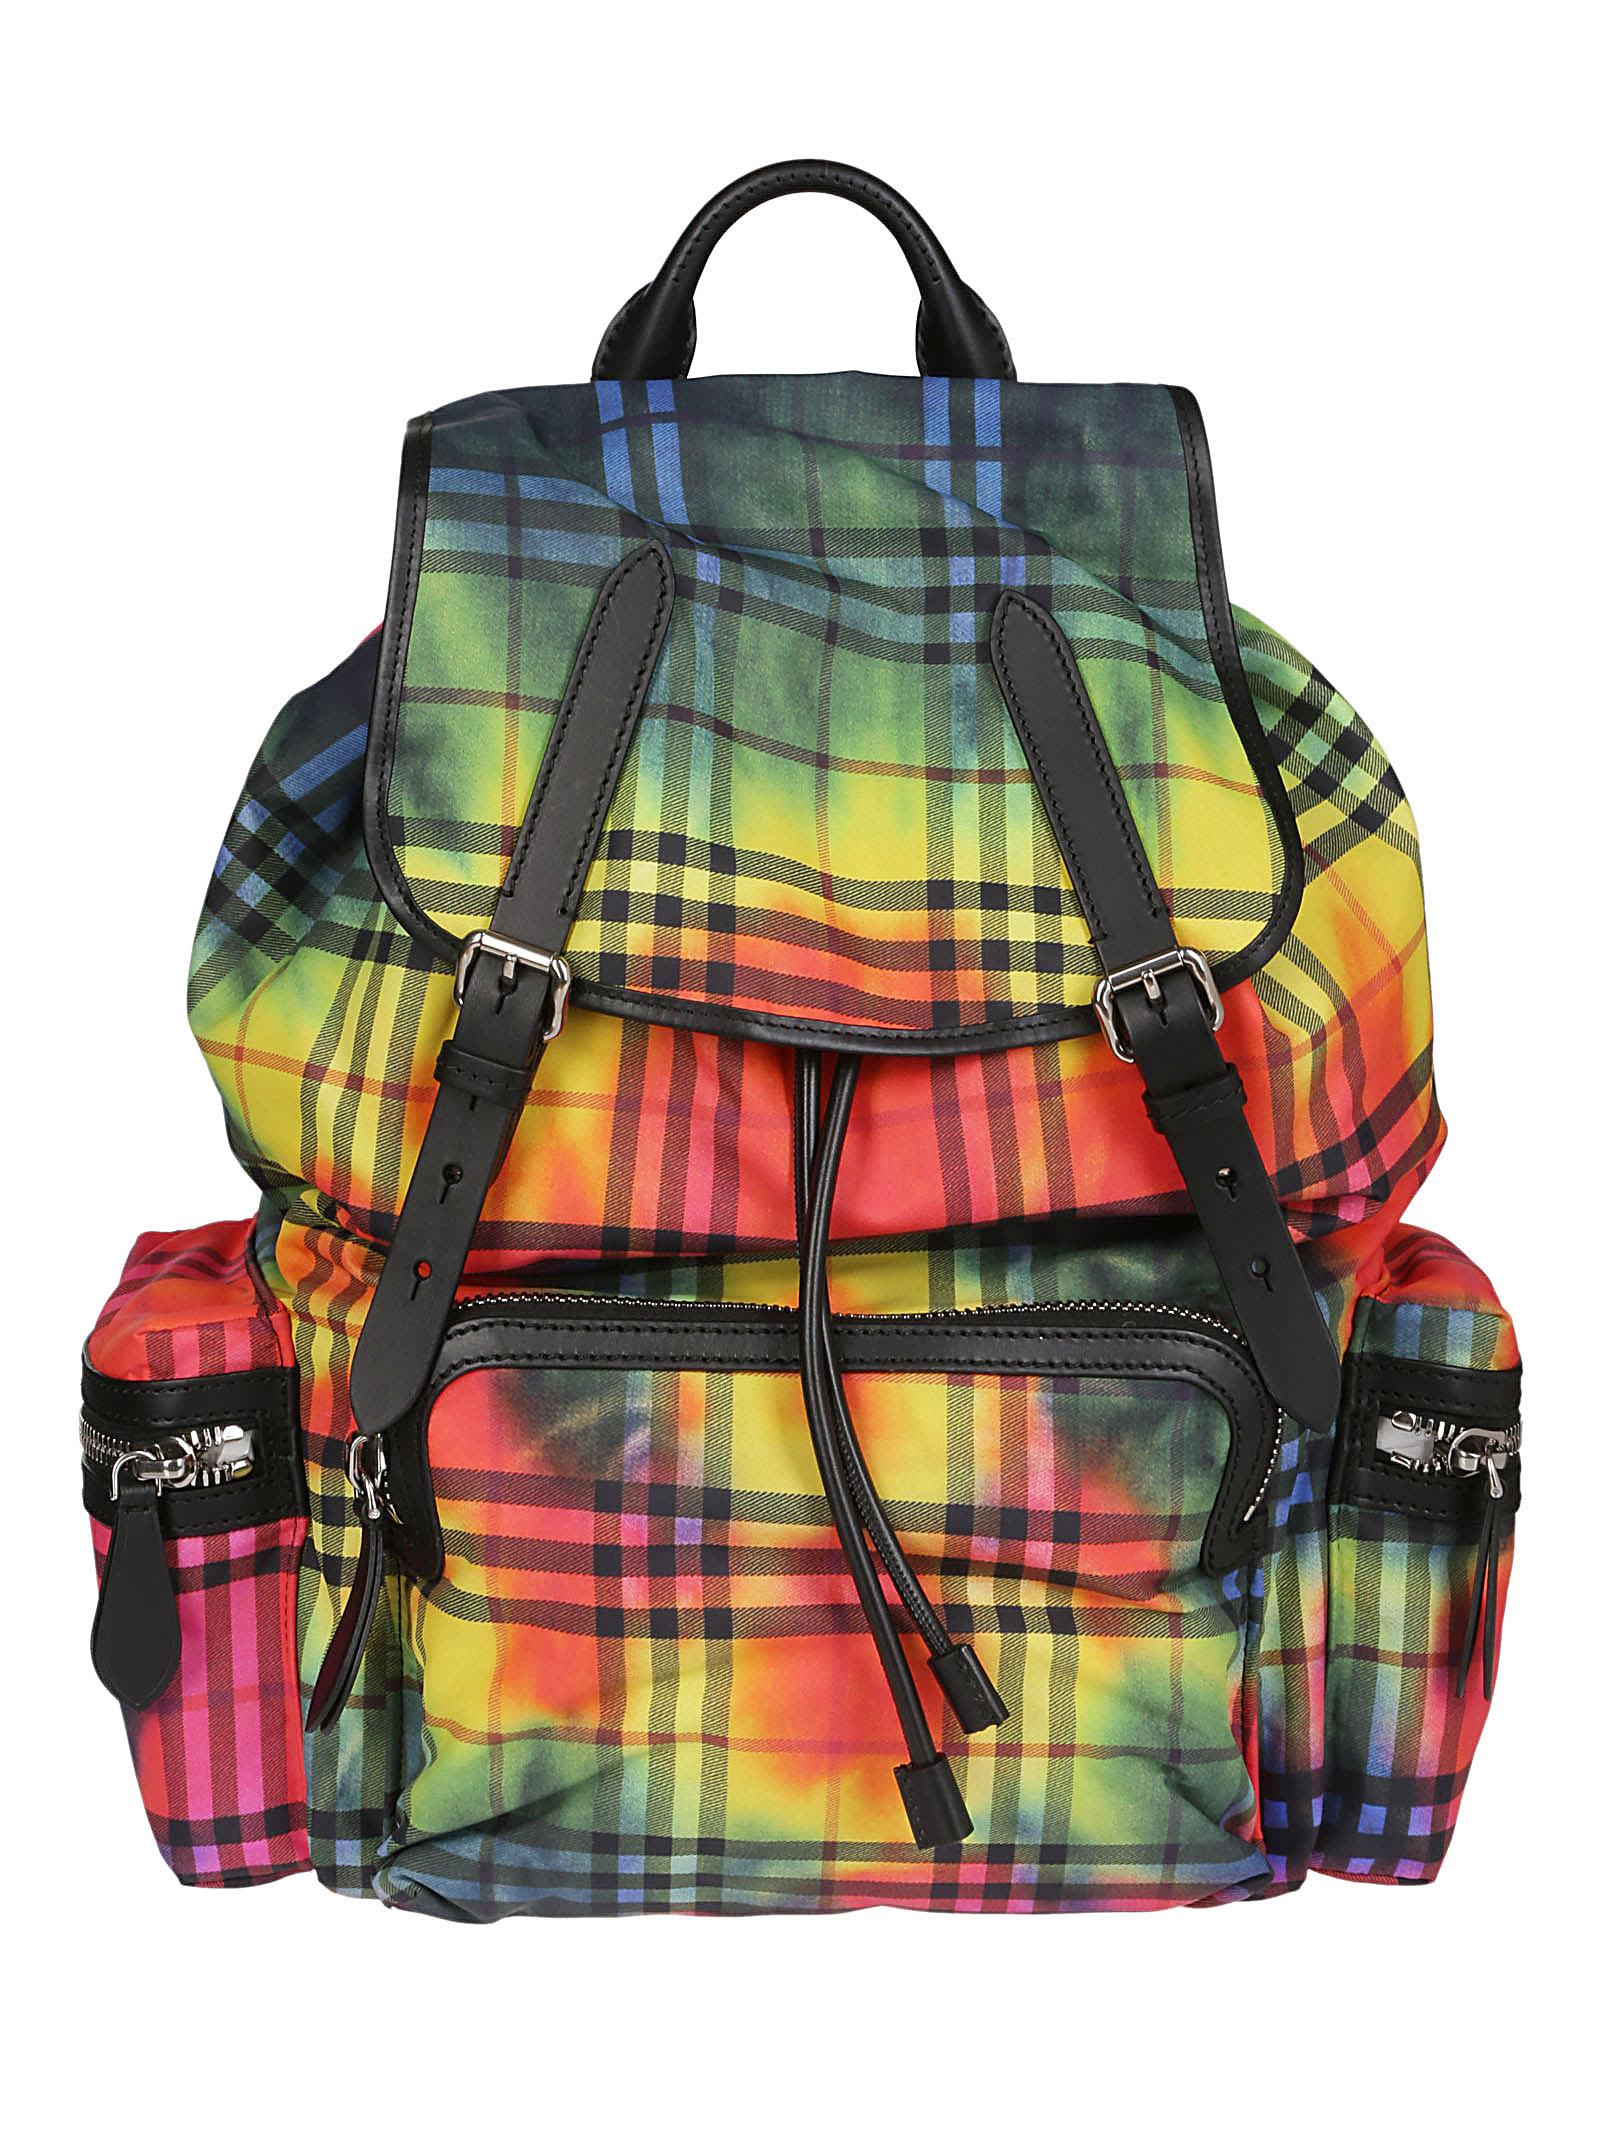 Burberry Tie-dye Vintage Check Backpack